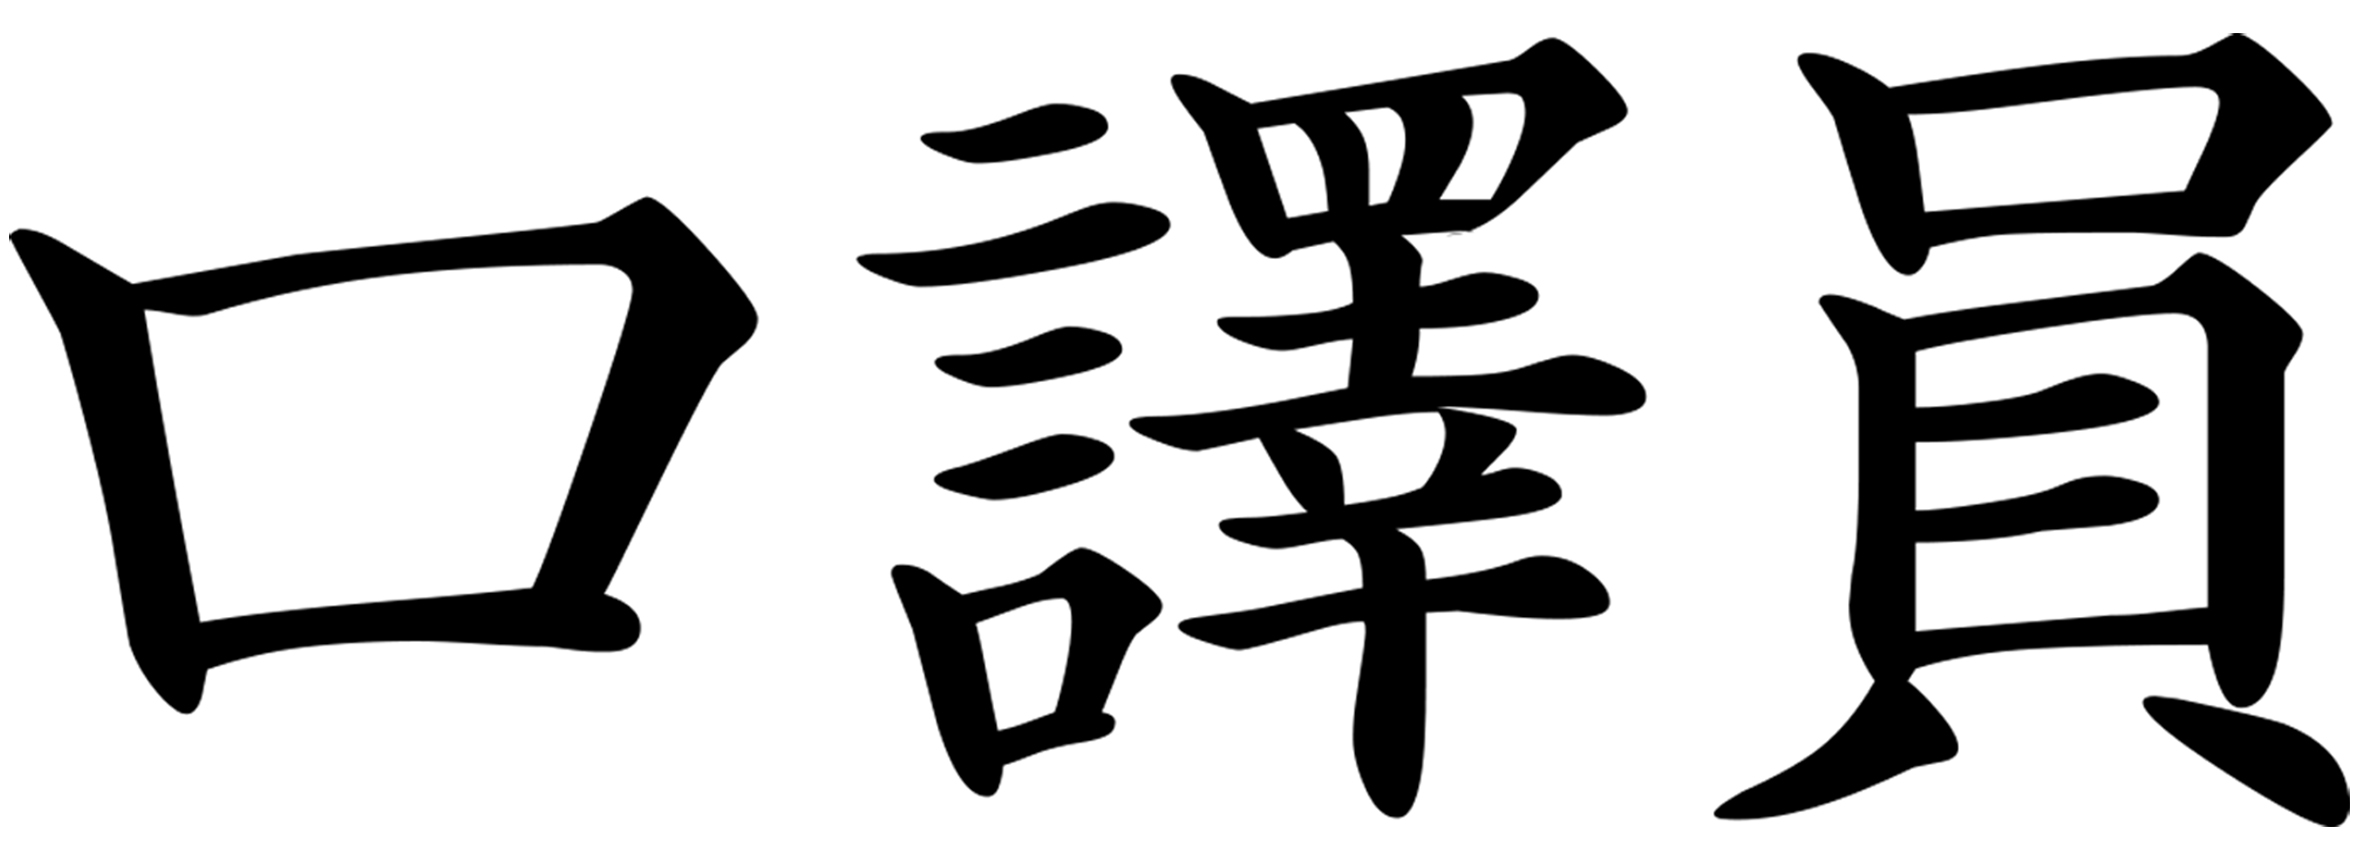 Chinese characters that represent The Interpreter.